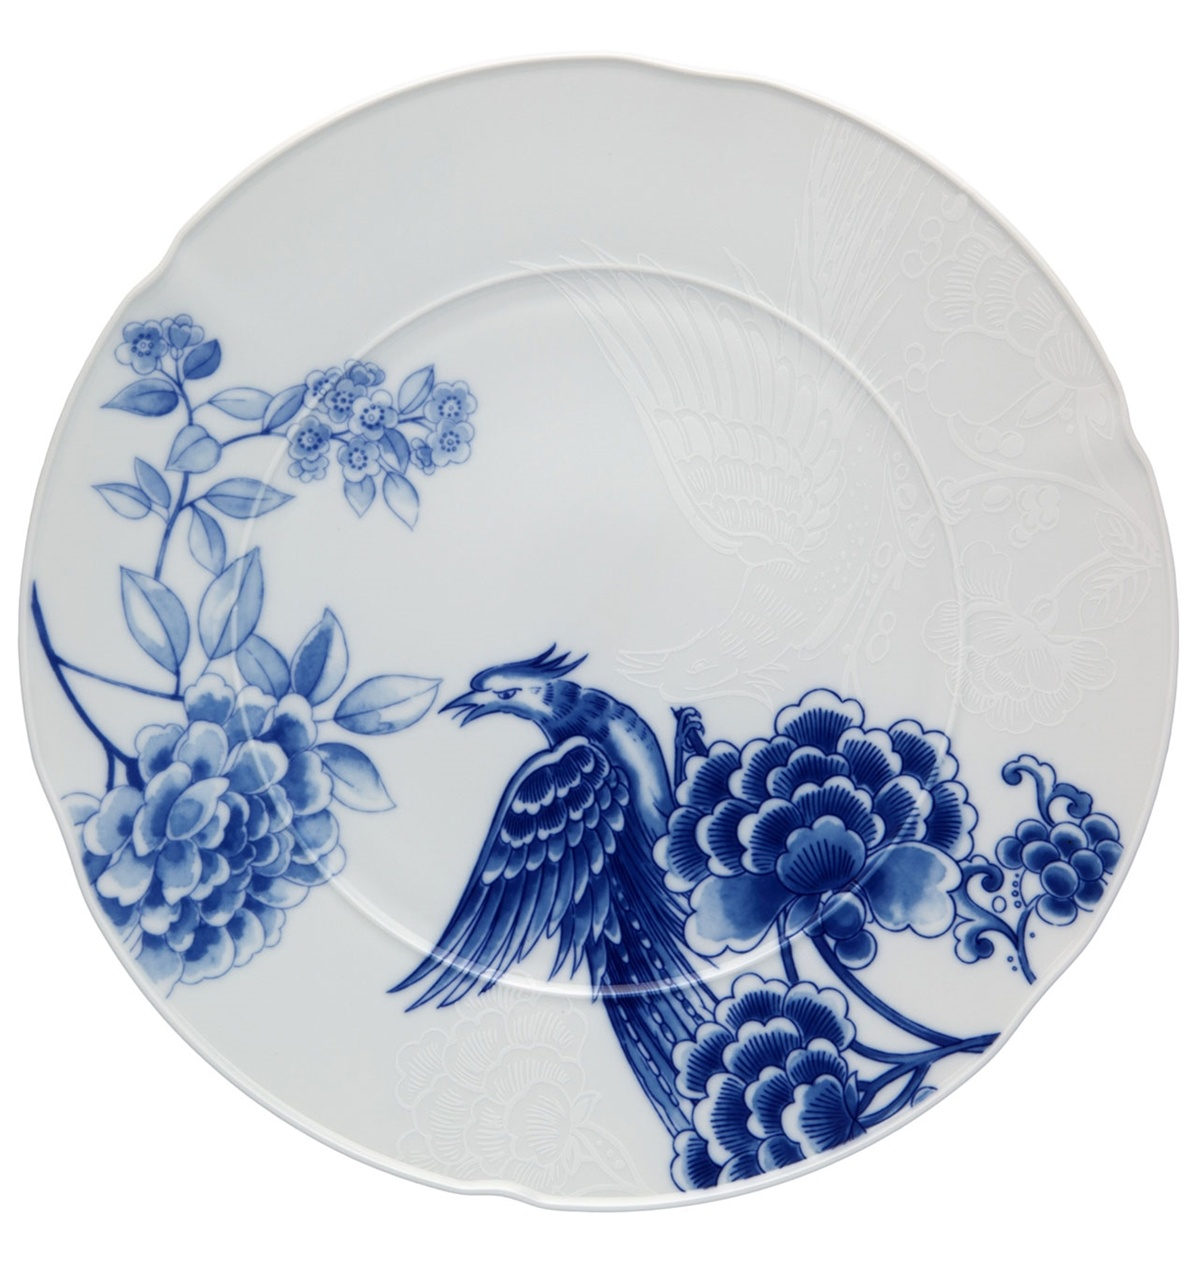 marcel-wanders-and-vista-alegre-unveil-new-porcelain-collection-at-mo-1.